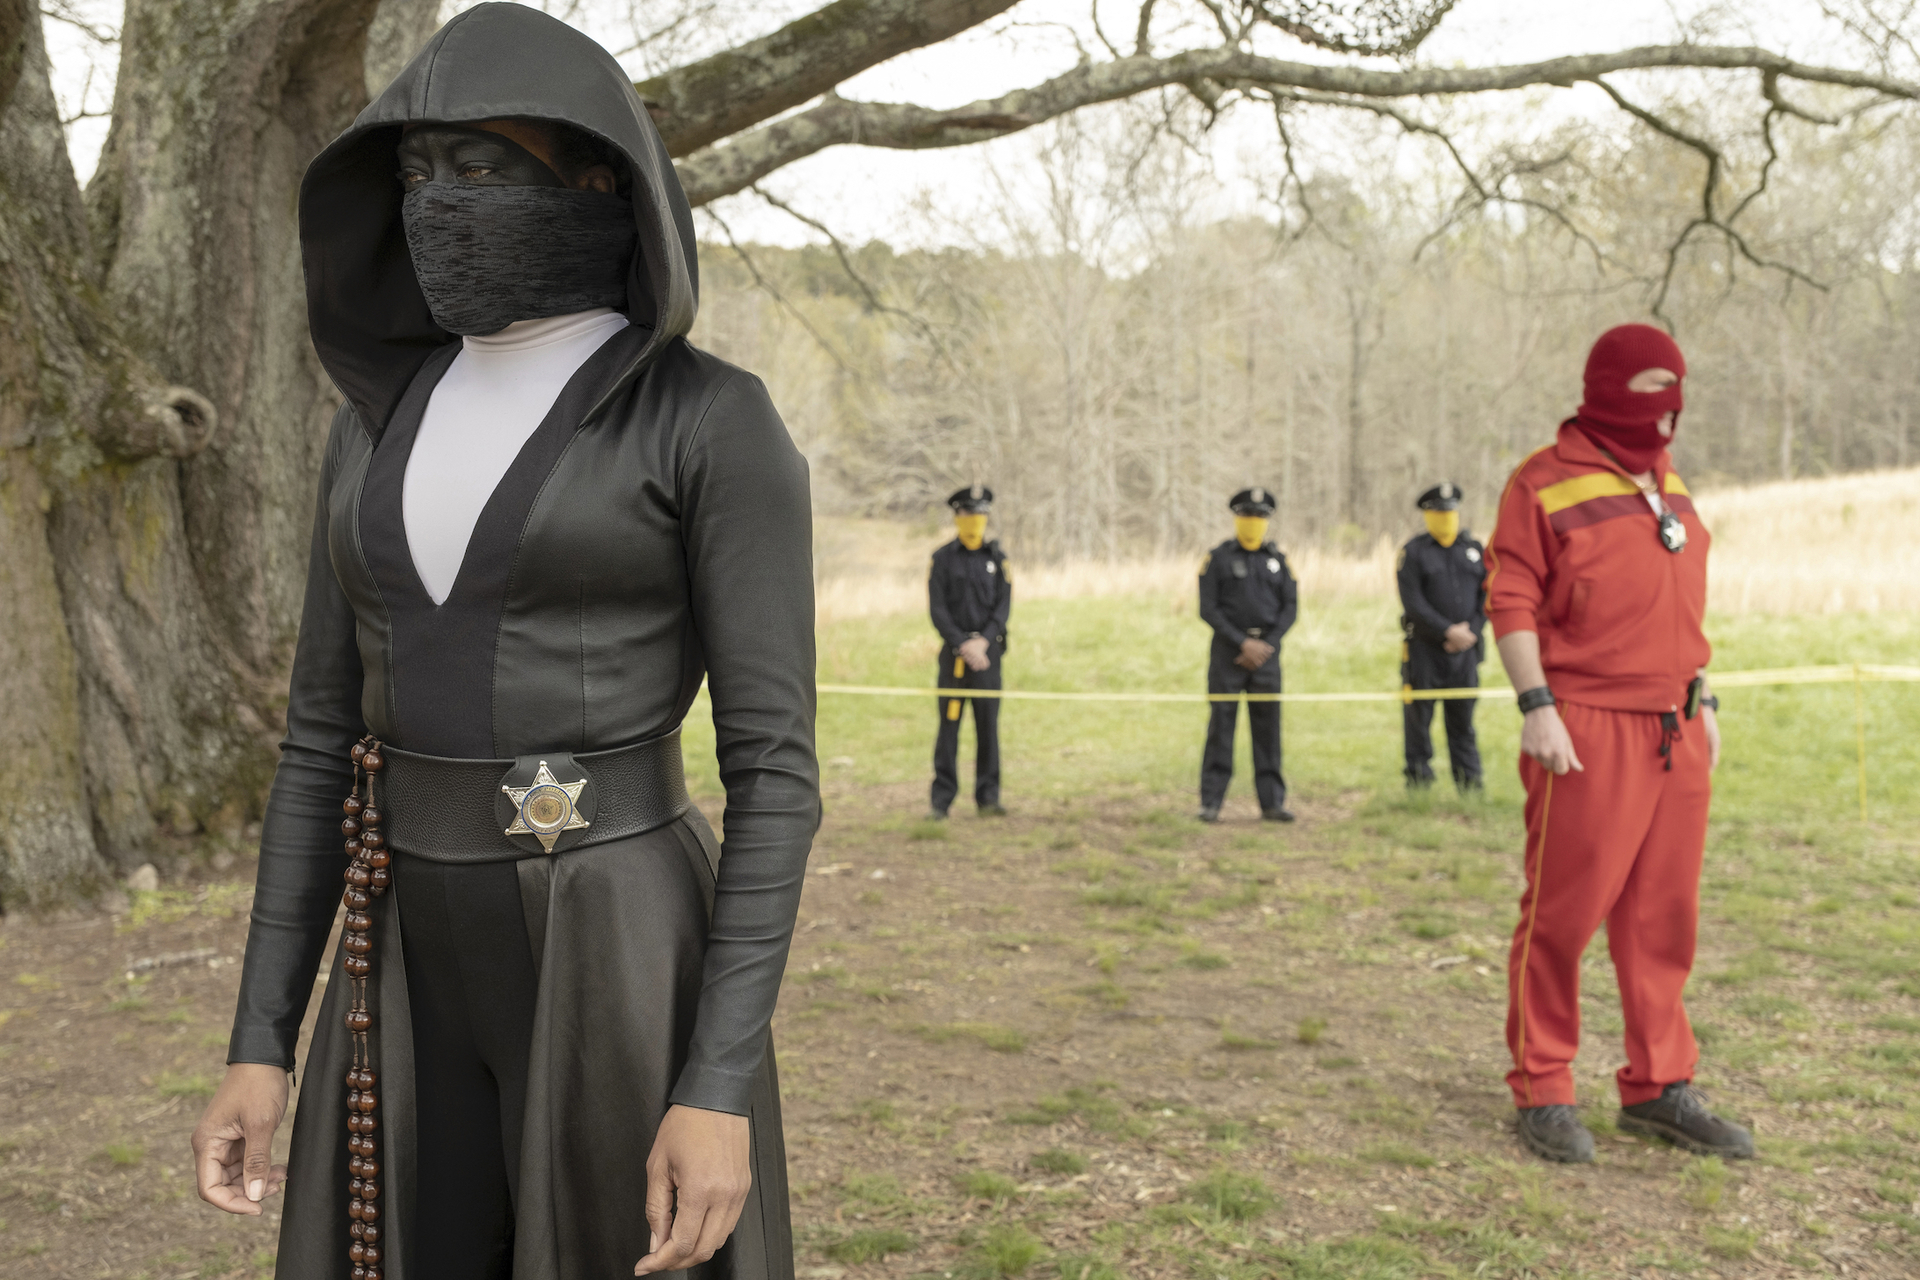 The Watchmen cast - A woman all dressed in black, a man all dressed in red and three police officers are standing inside a park